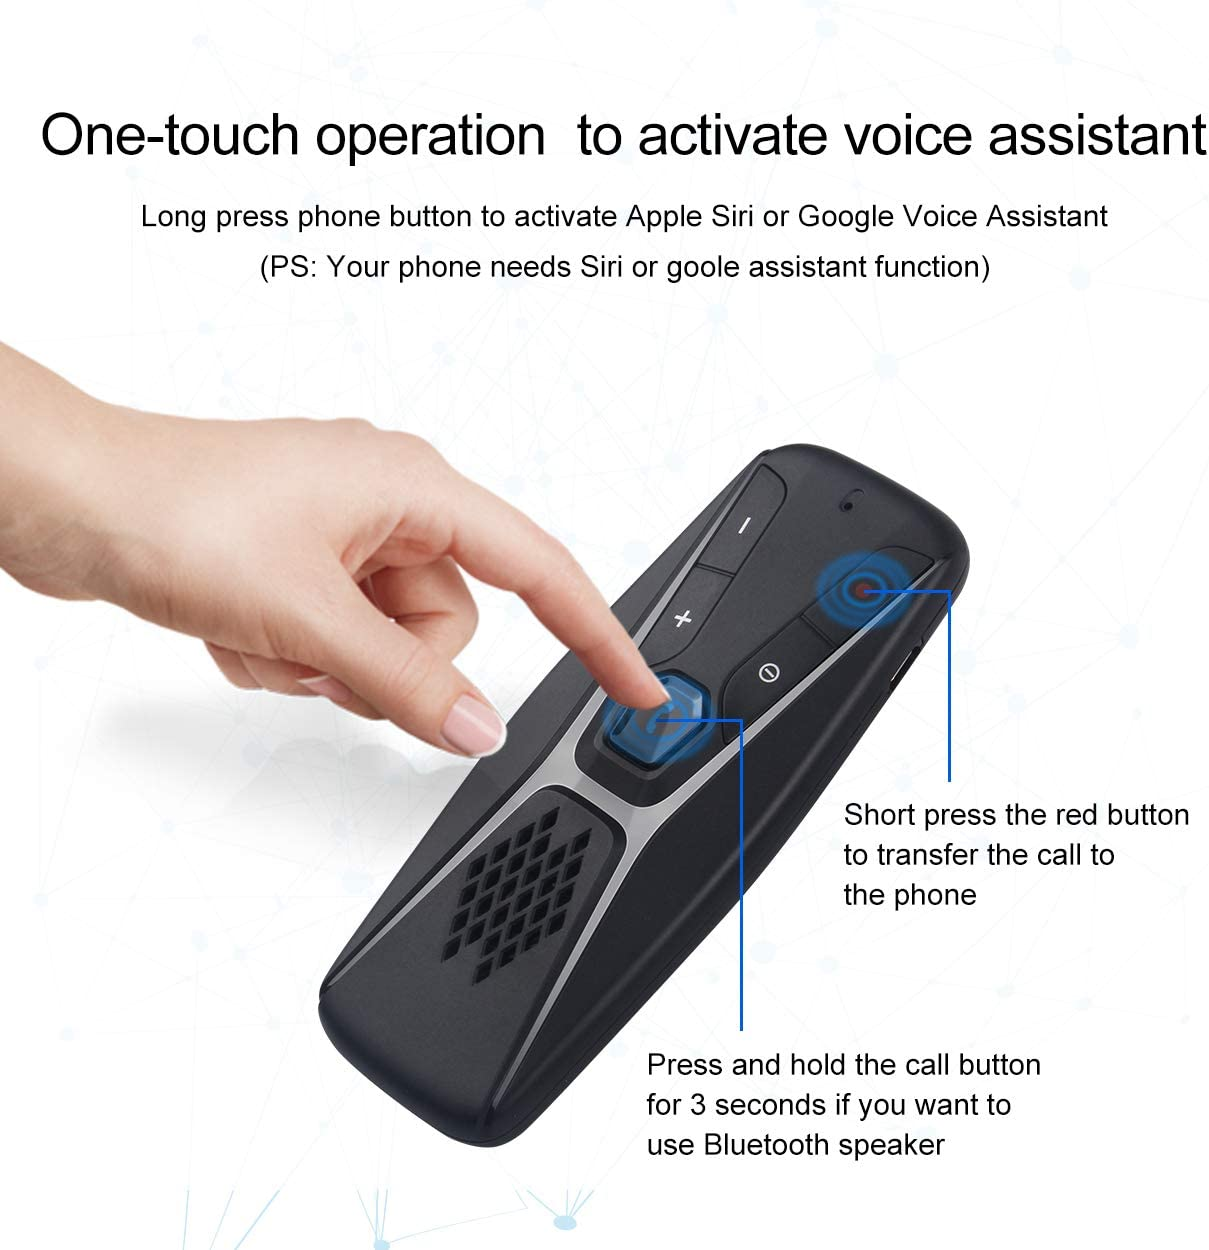 USB Cable Charging Hands Free Bluetooth Adapter for Cell Car Phone Intelligent Noise Reduction Vibration Power On Function with Voice Dialing Supports 2 Mobile Phones Connected at The Same Time